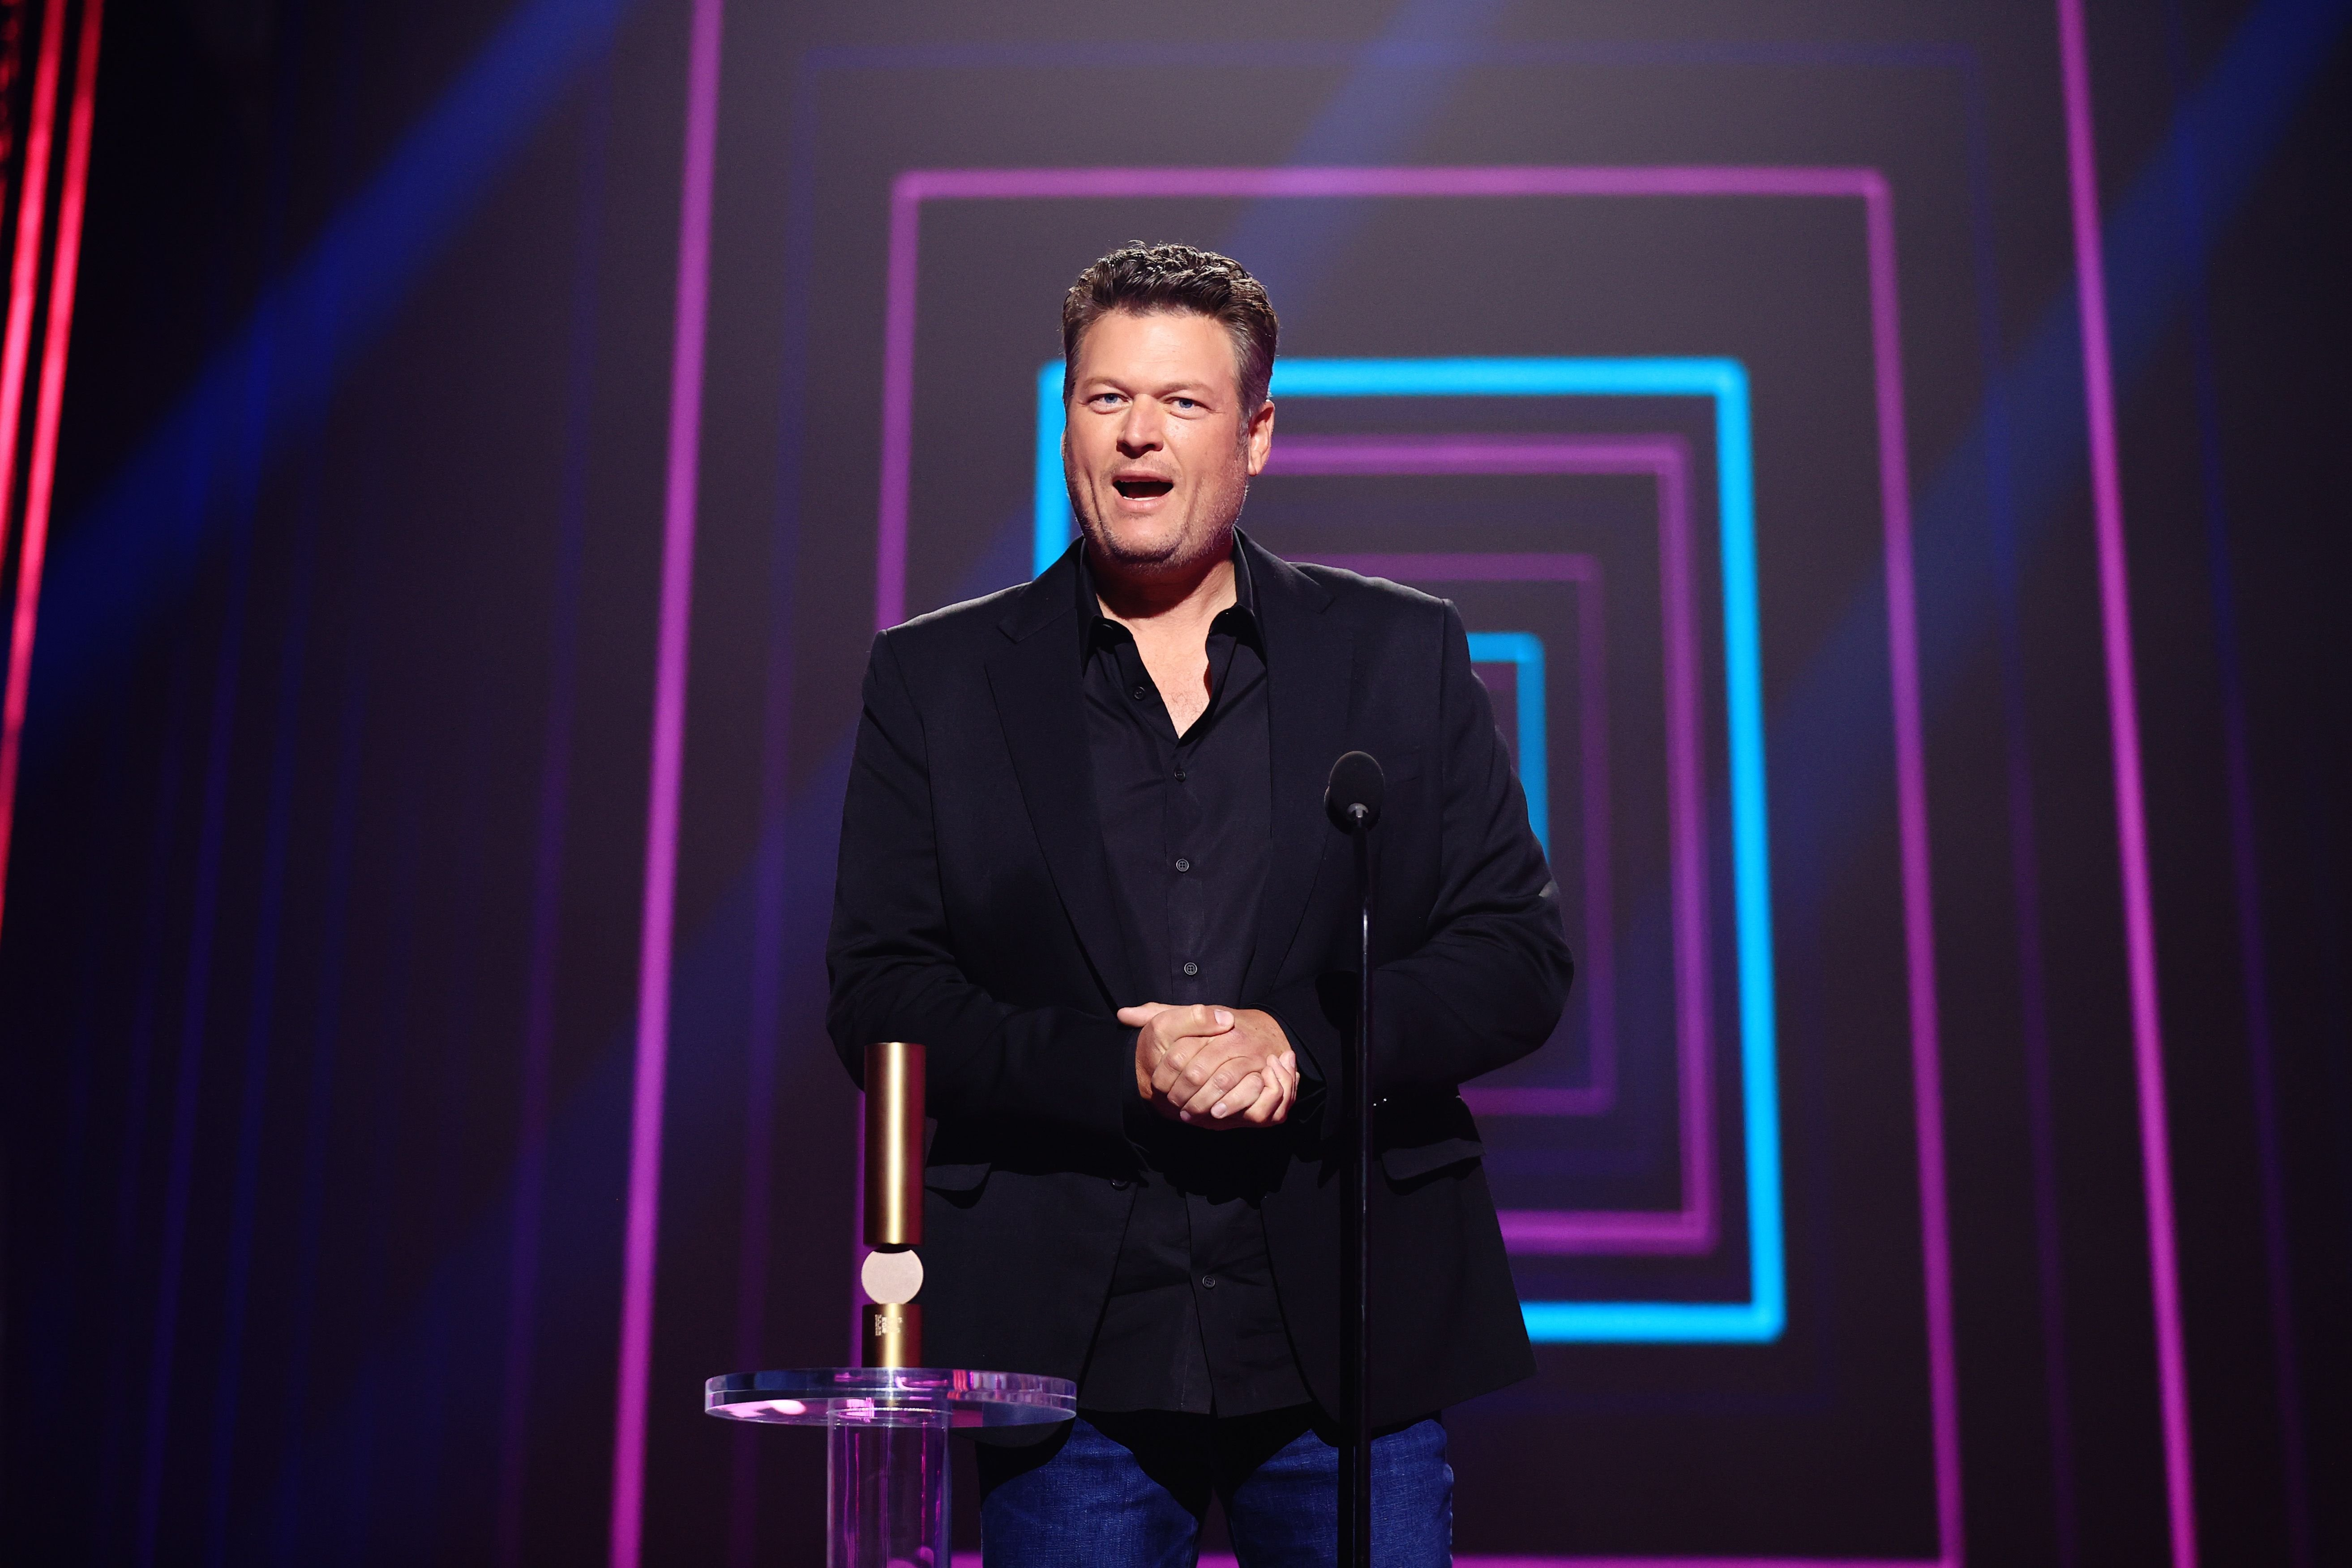 Blake Shelton onstage at the 2020 E! People's Choice Awards on November 15, 2020. | Getty Images